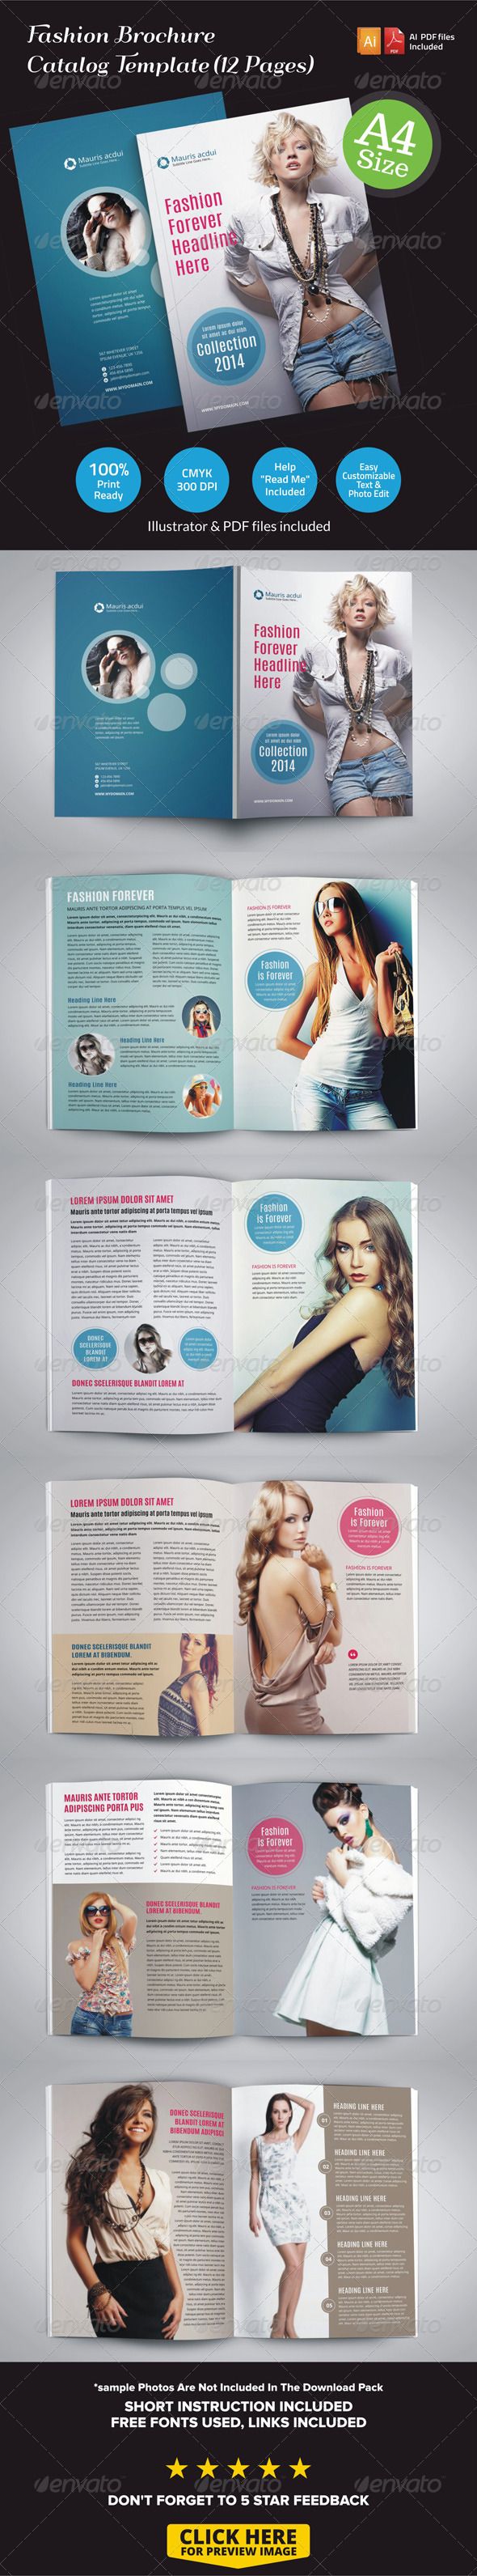 GraphicRiver Fashion Brochure Catalog 12 Pages 6925336